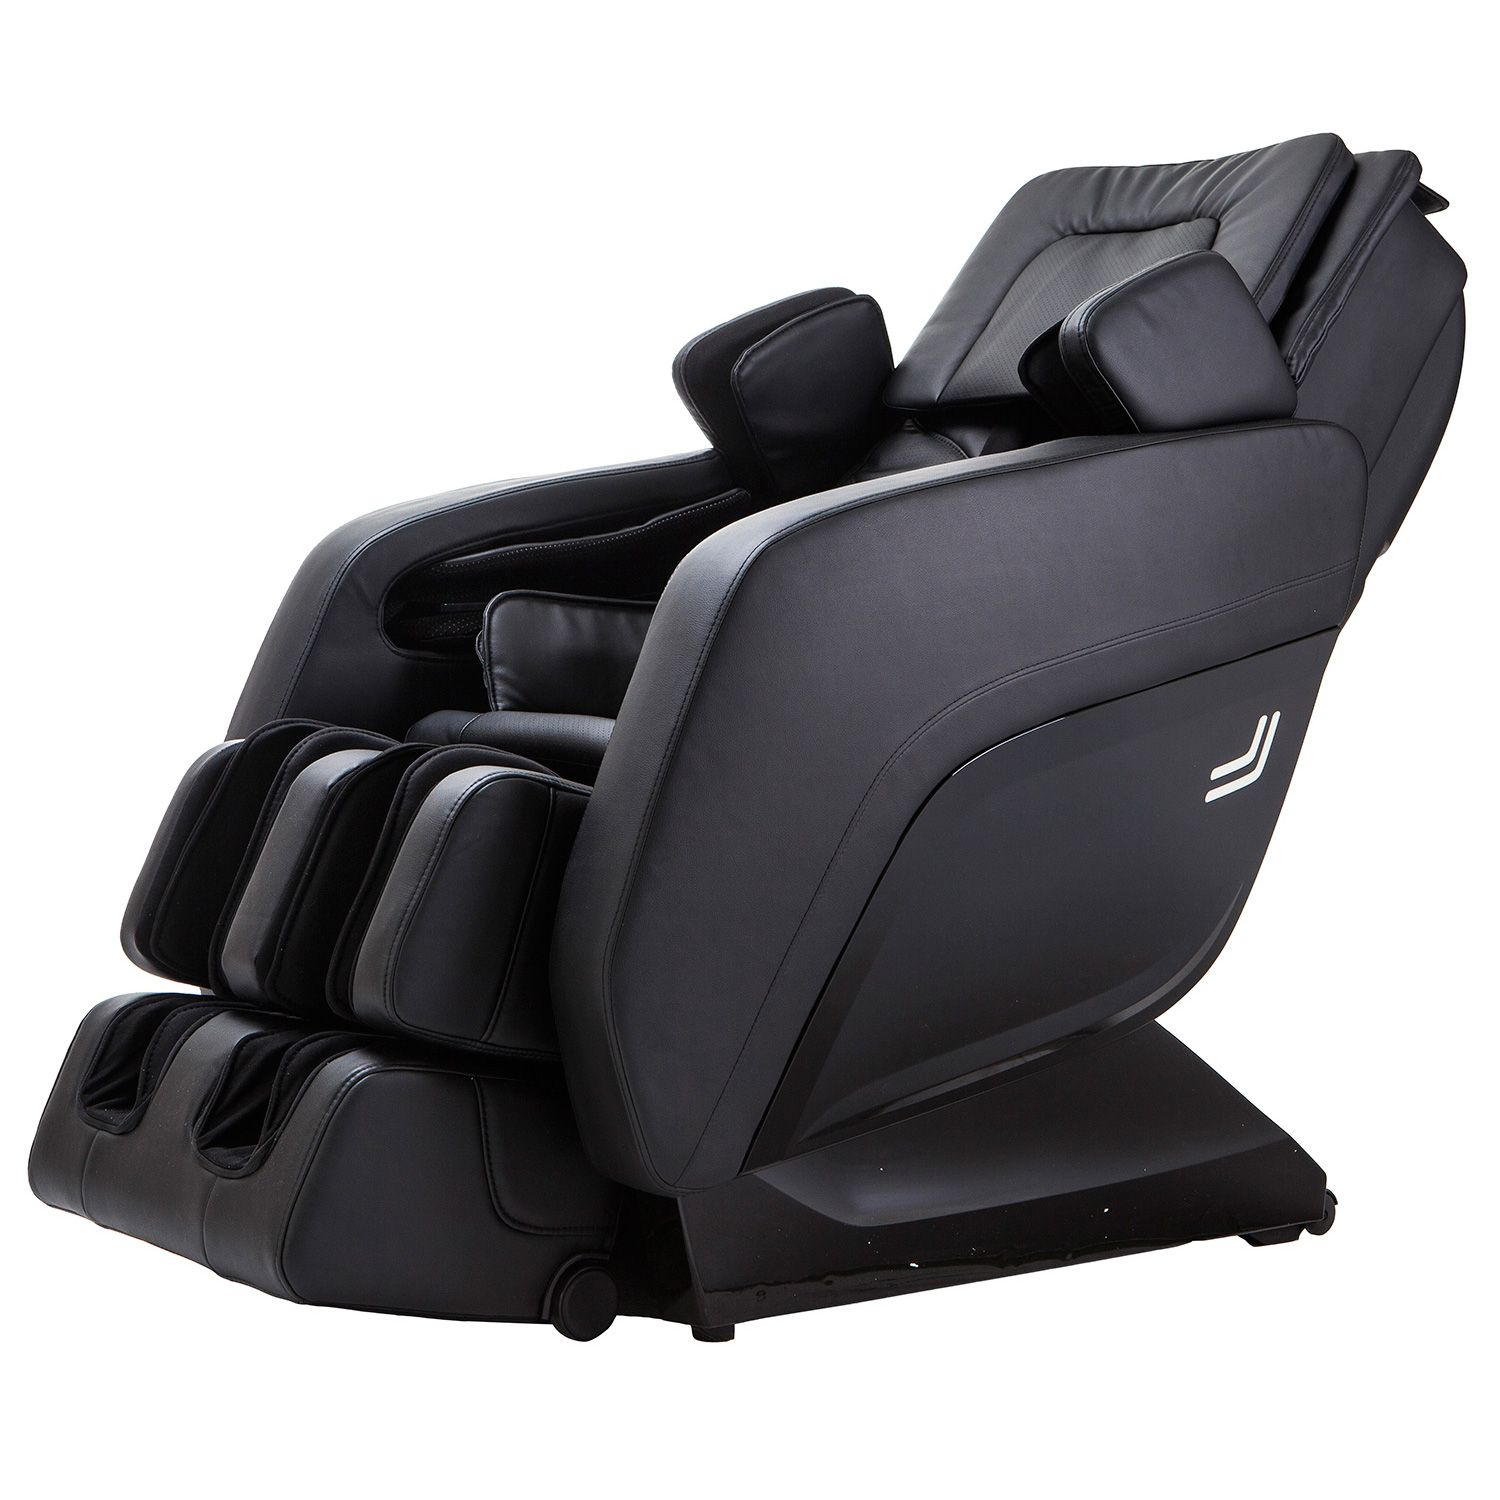 Osaki Massage Chair | Panasonic Massage Chair Price | Osaki Os-4000